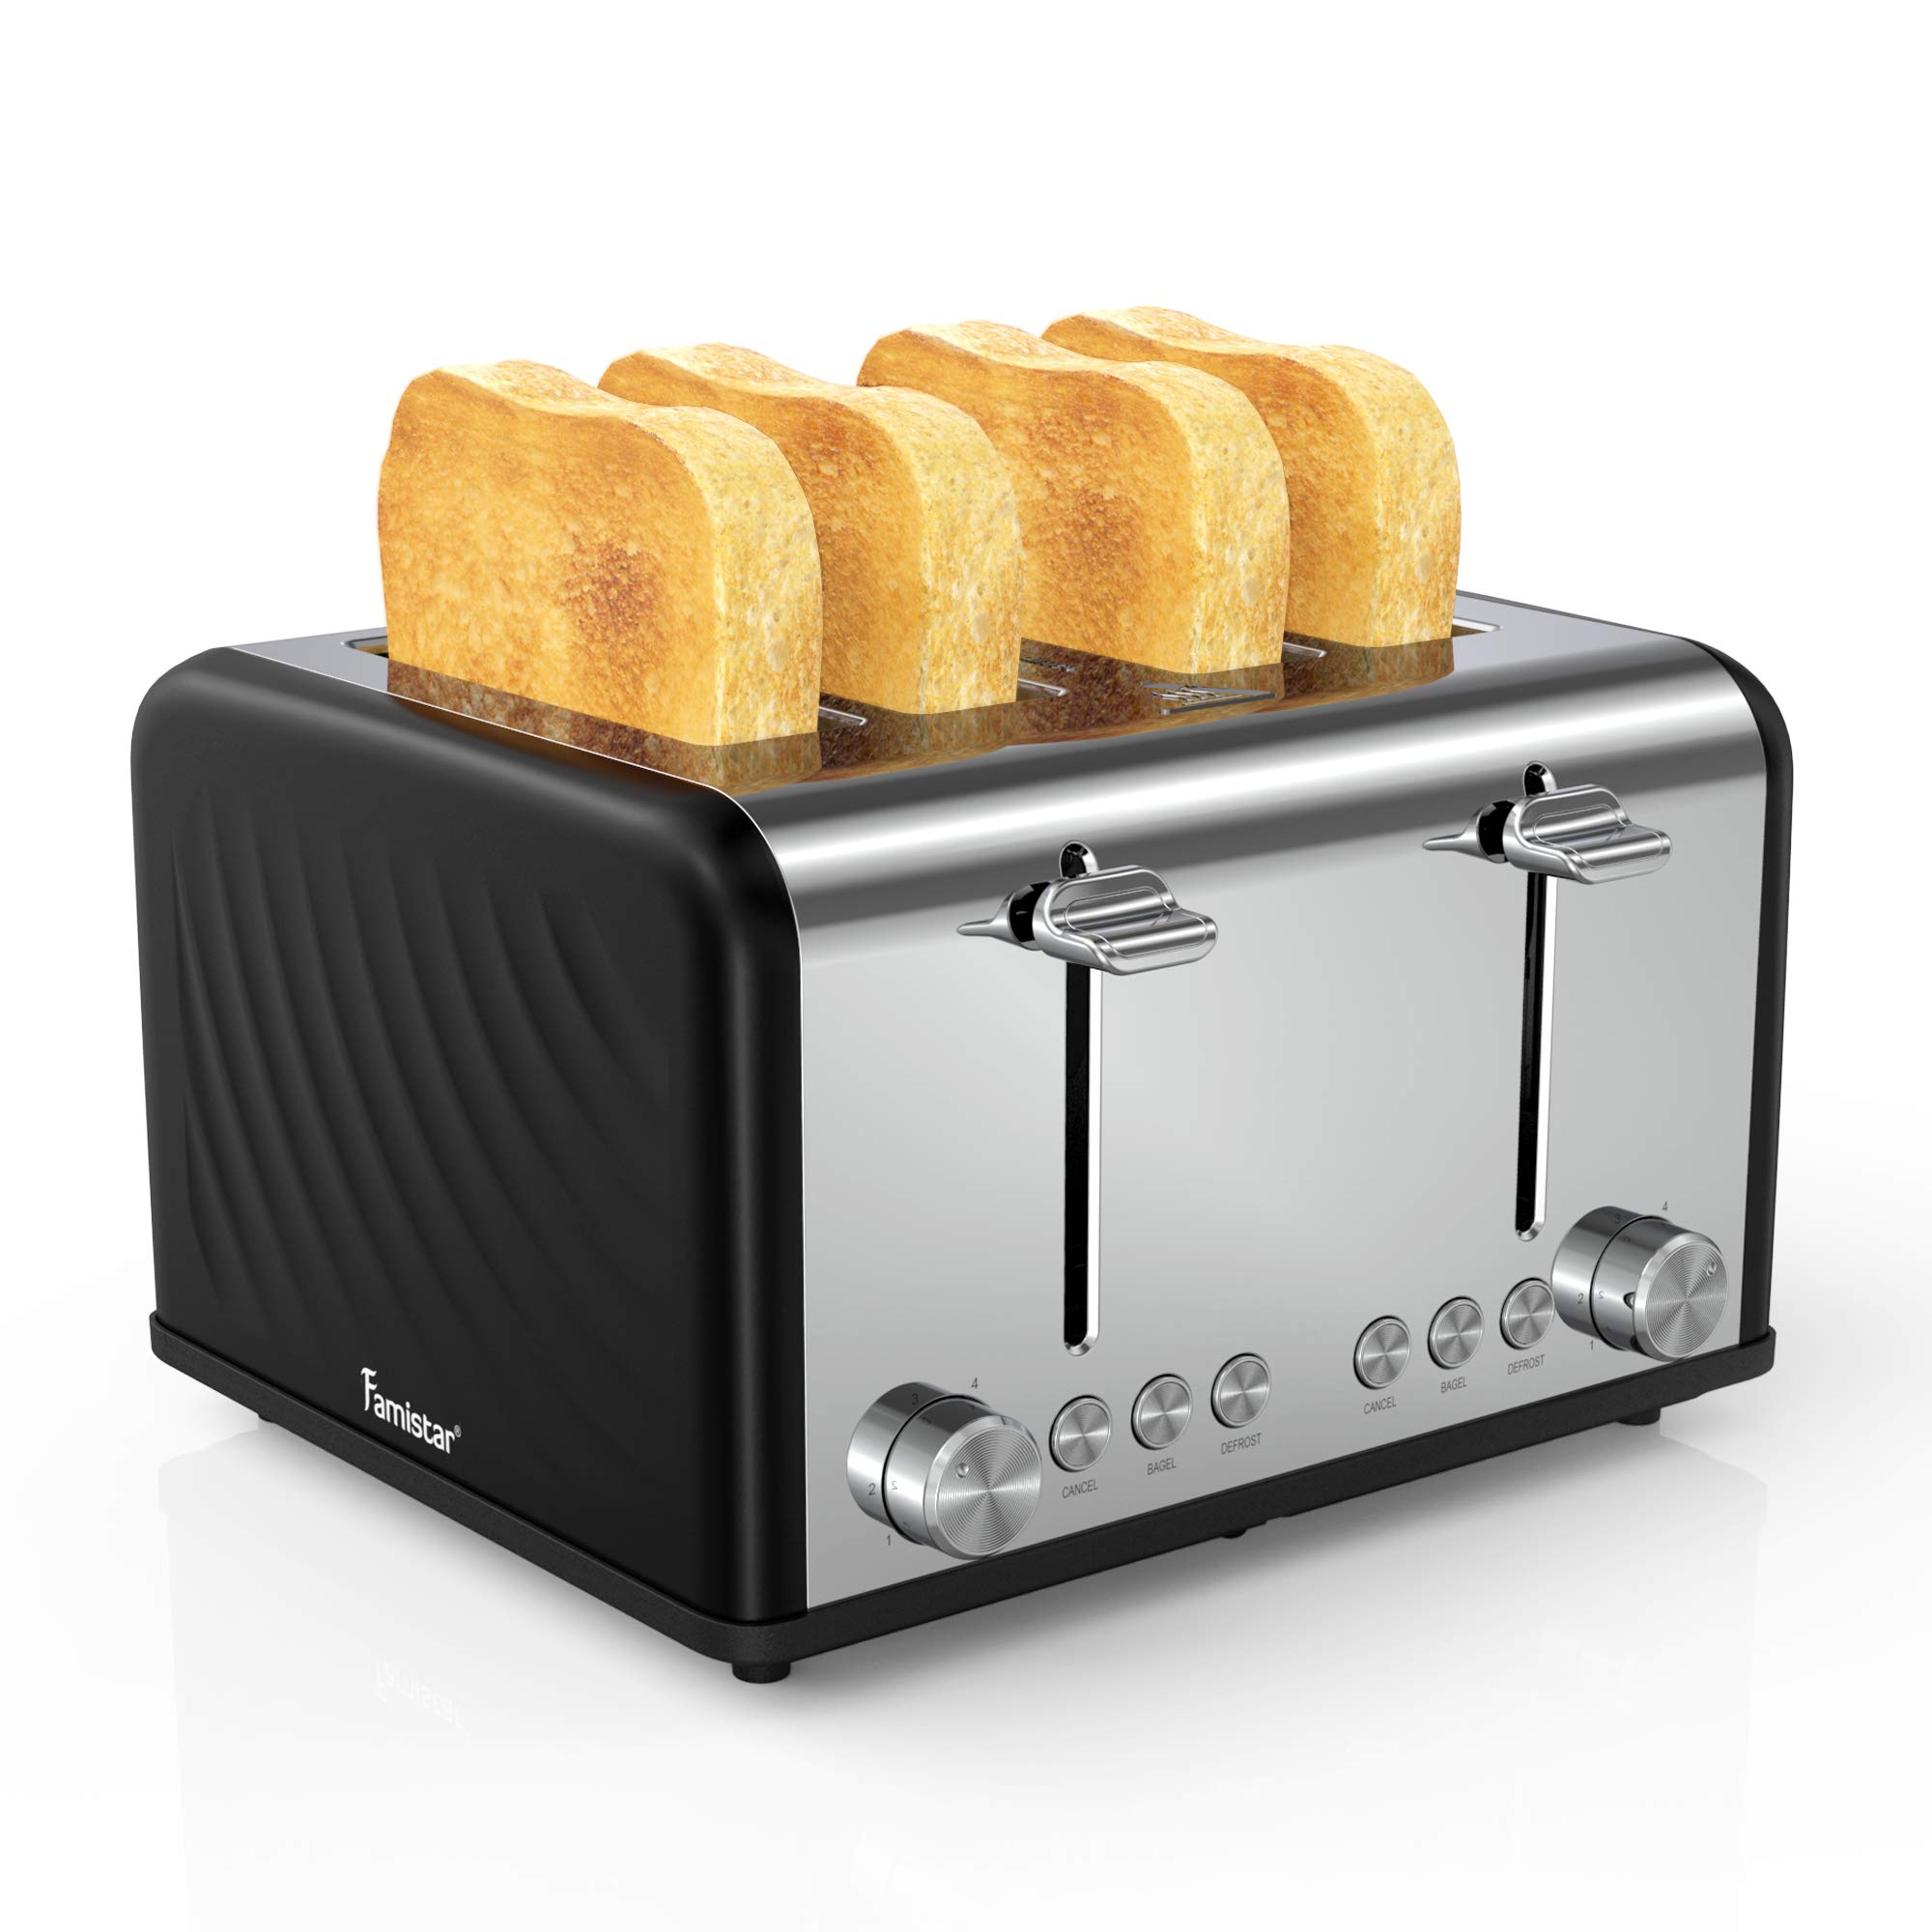 Toaster 4 Slice, Famistar Stainless Steel 1650W Toaster, Extra Wide Slots Four Slice 6 Bread Shade Settings Bread Bagel Toaster with Bagel, Cancel, Defrost Function by Famistar